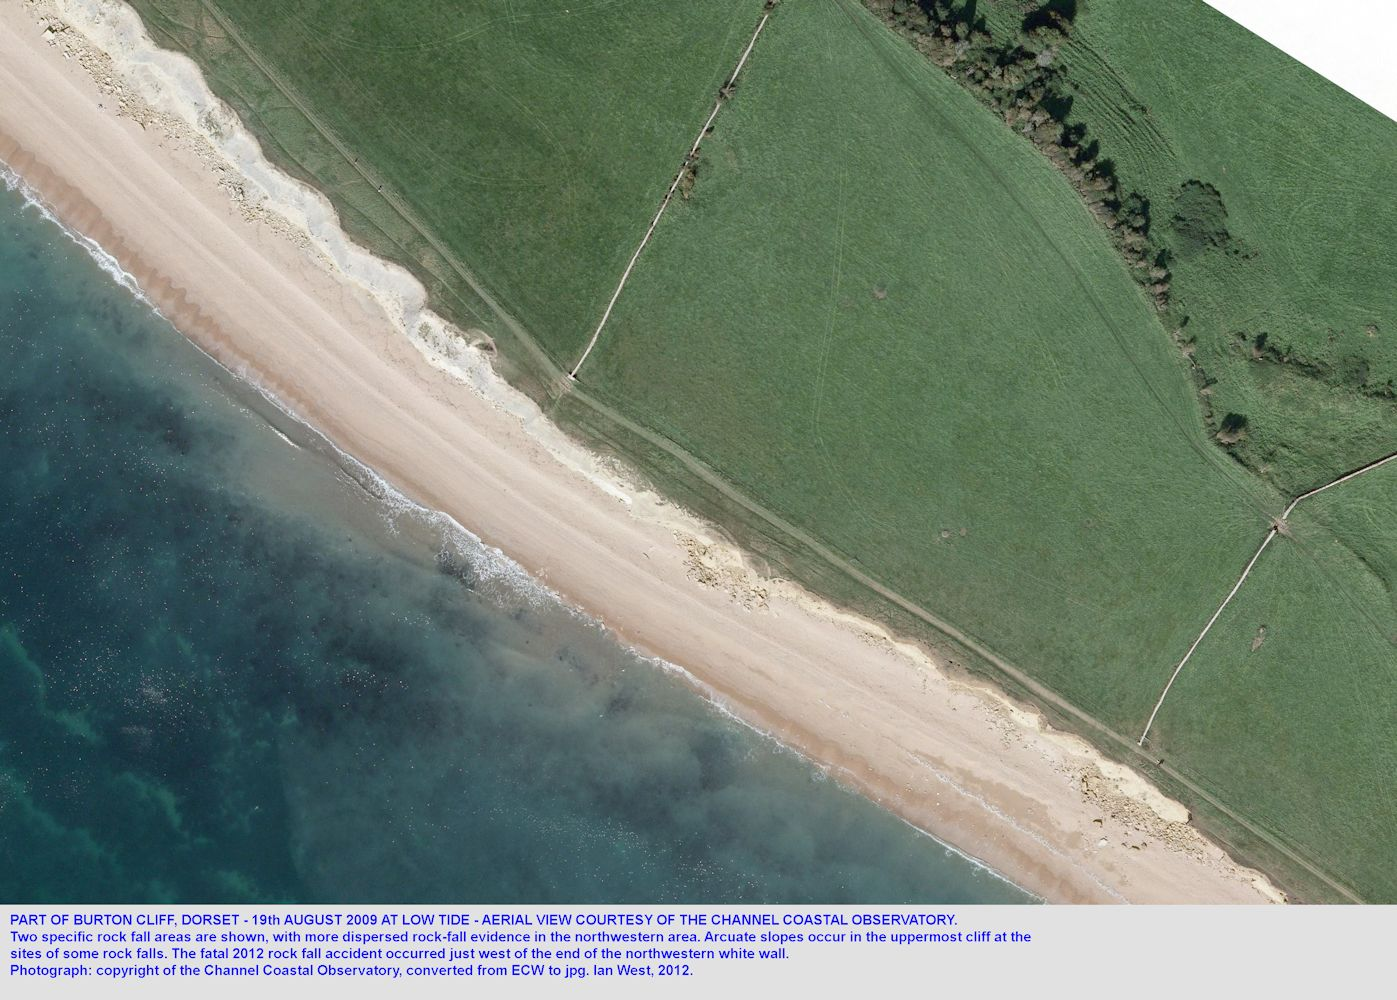 A Channel Coastal Observatory aerial photograph of part of Burton Cliff, Burton Bradstock, Dorset, in August 2009